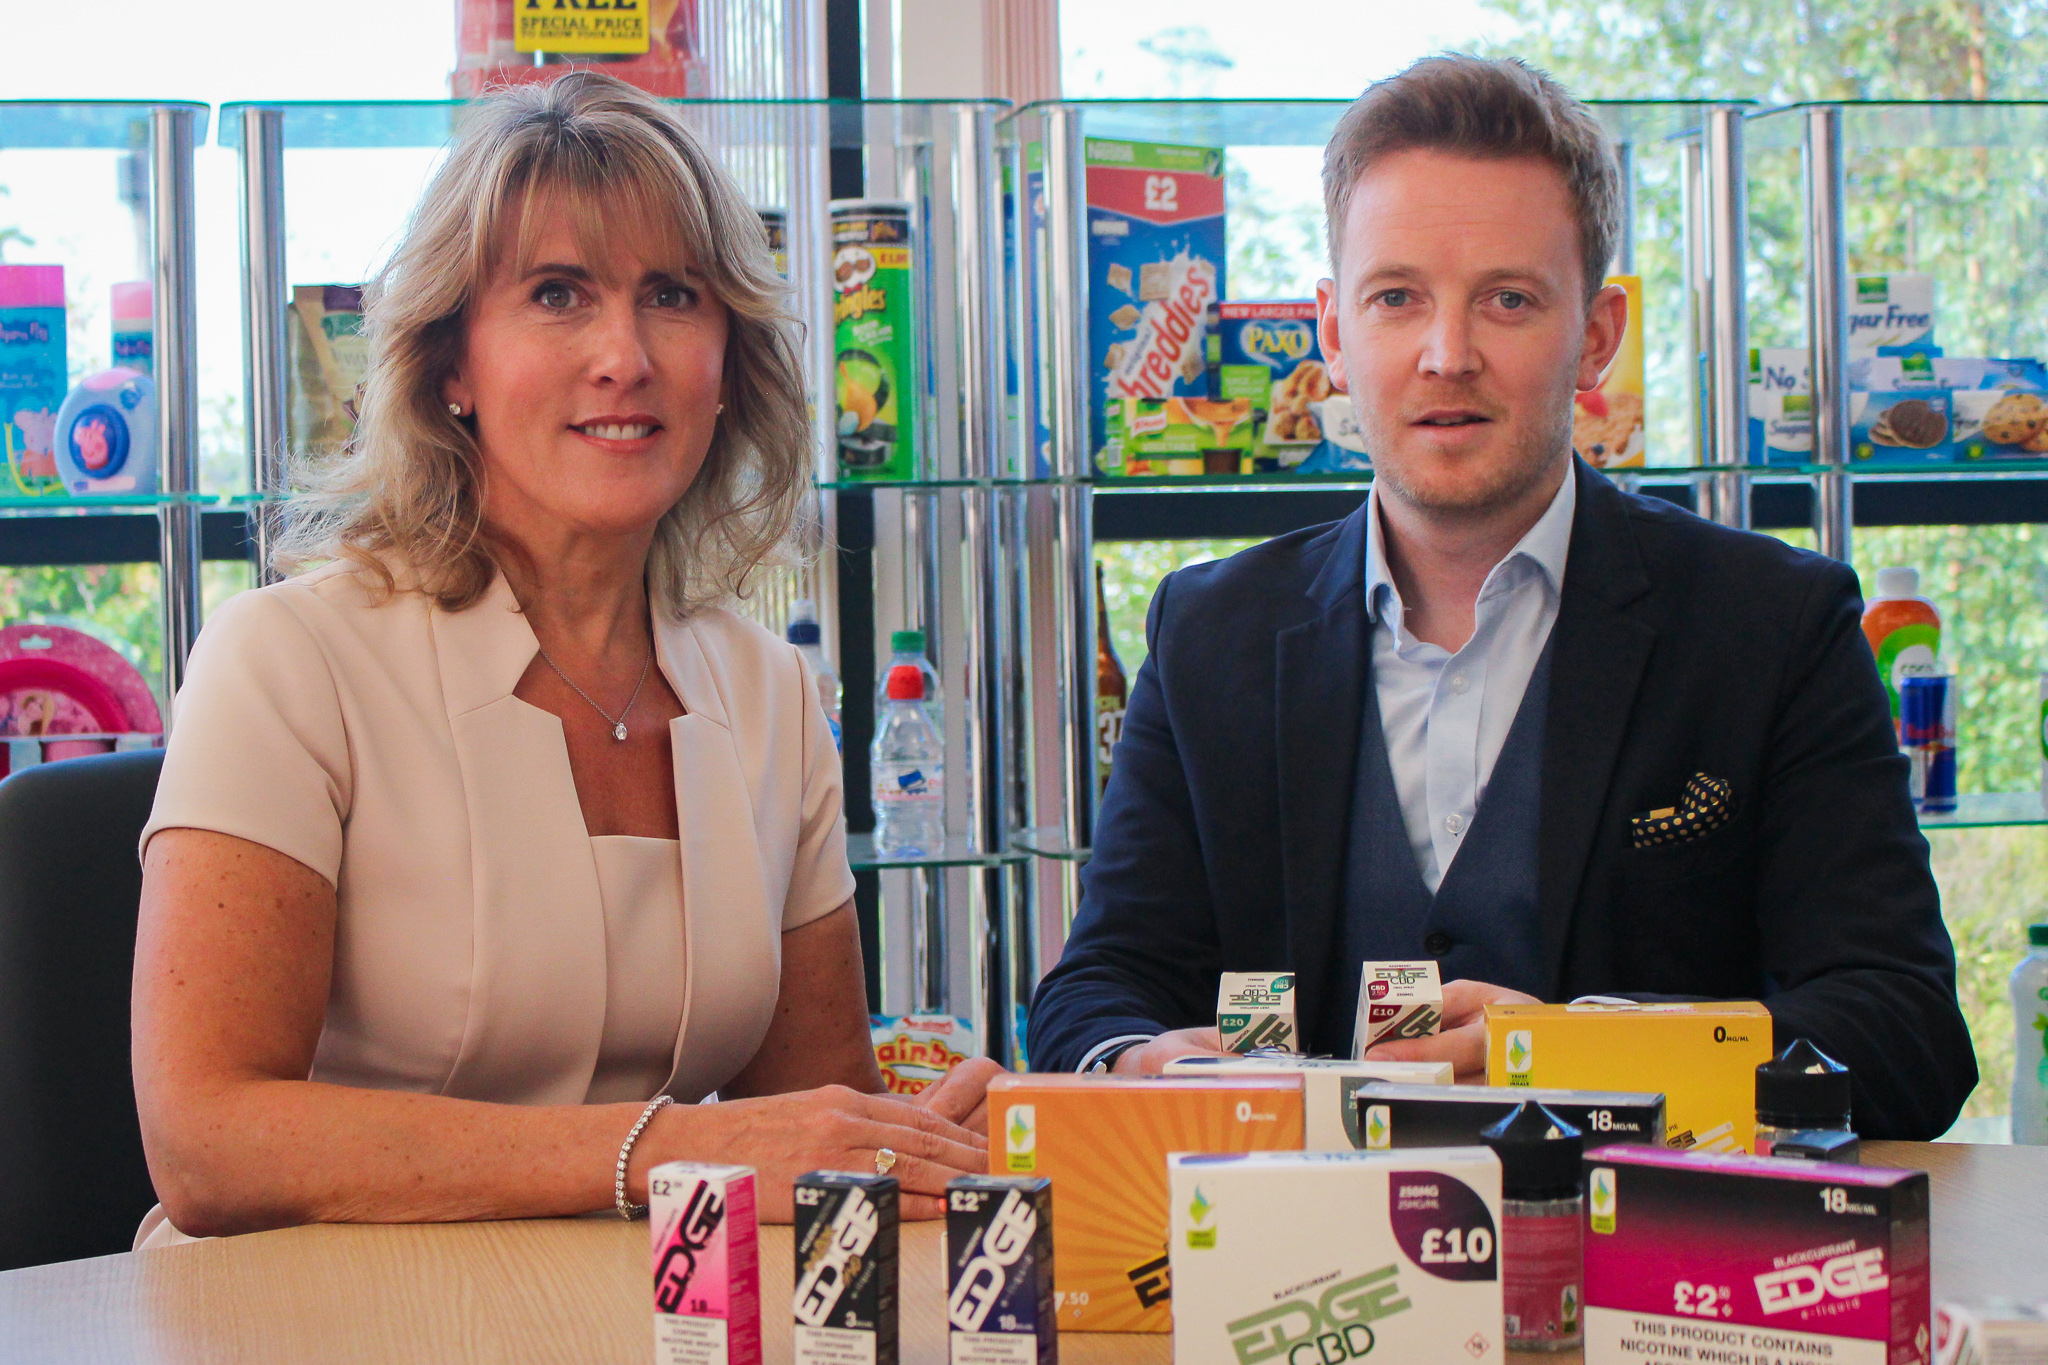 Debbie Harrison, Joint MD at Pricecheck, and Chris Carr, Sales Director at NextGen360